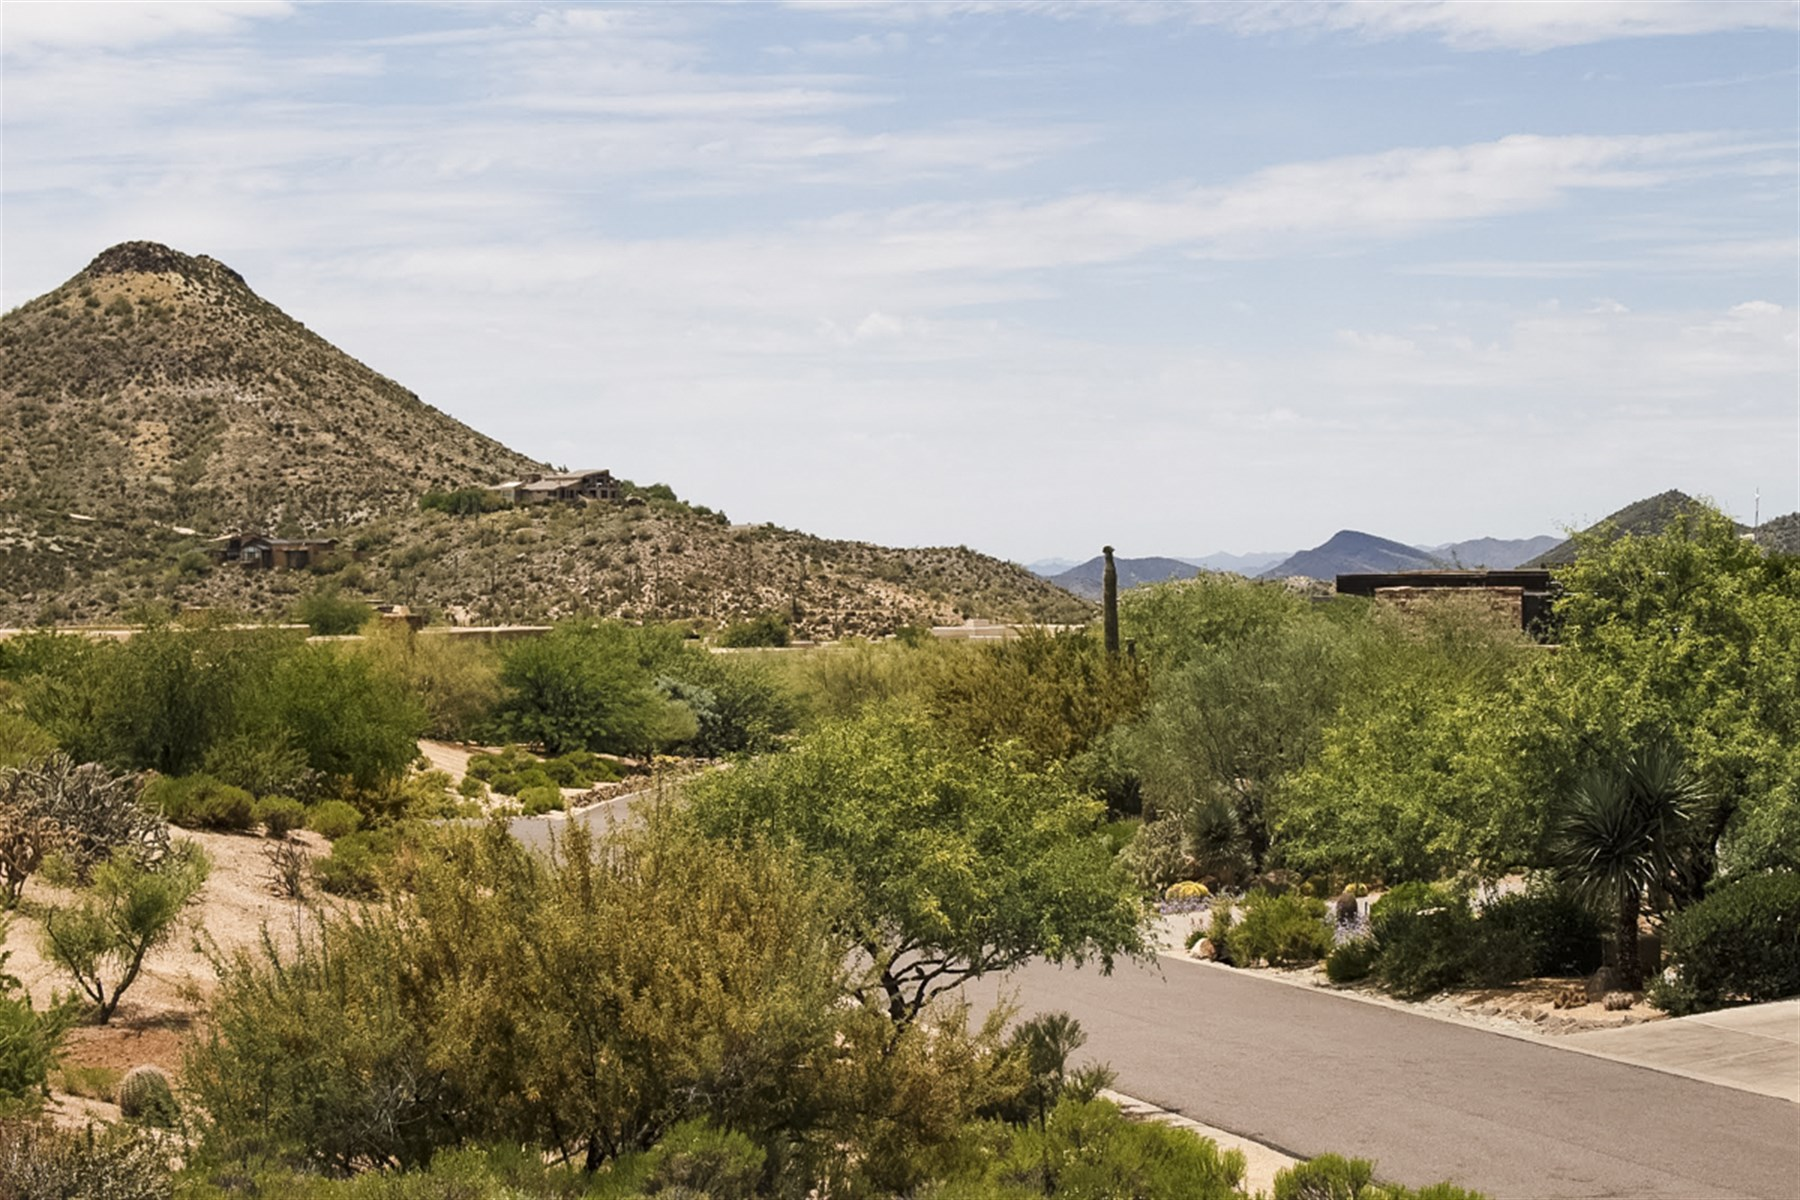 Terreno por un Venta en An elevated homesite in The Village of Mountain Skyline with excellent views. 10085 E PALO BREA DR 87 Scottsdale, Arizona, 85262 Estados Unidos